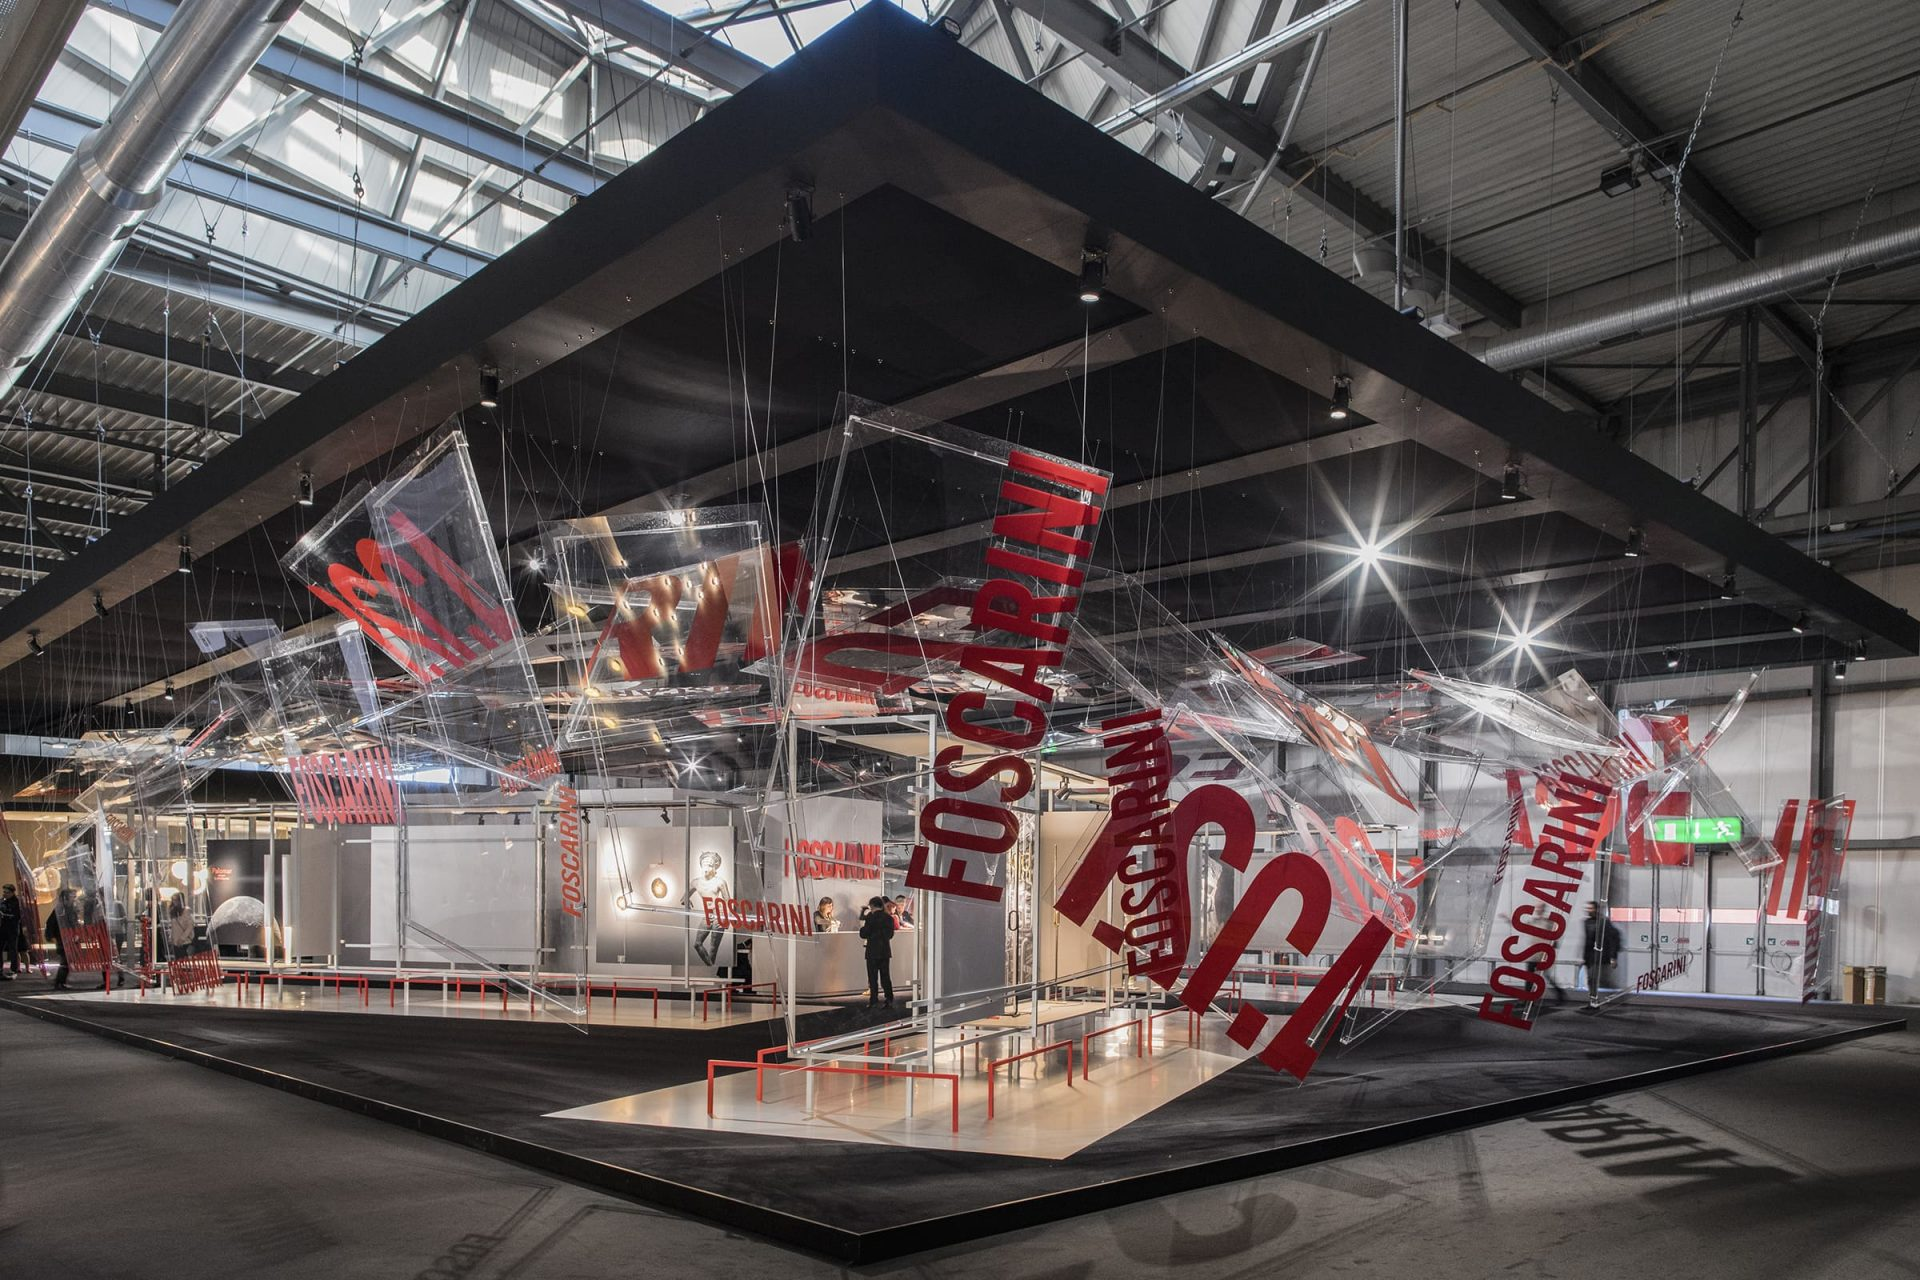 booth at Euroluce with Foscarini in red text printed on various squares suspended from the ceiling, displaying light systems and lamps